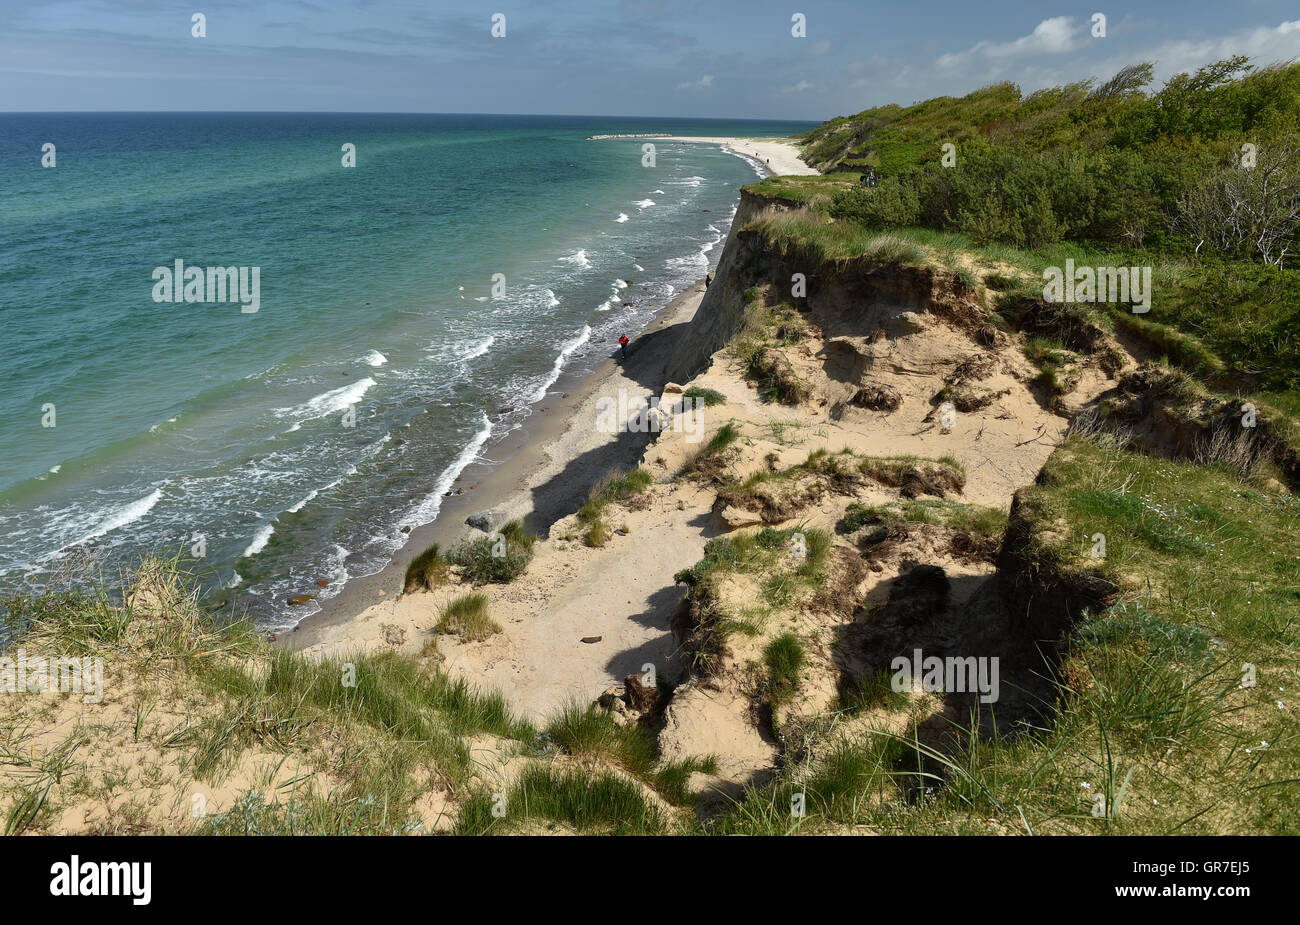 Cliff On The Baltic Sea - Stock Image